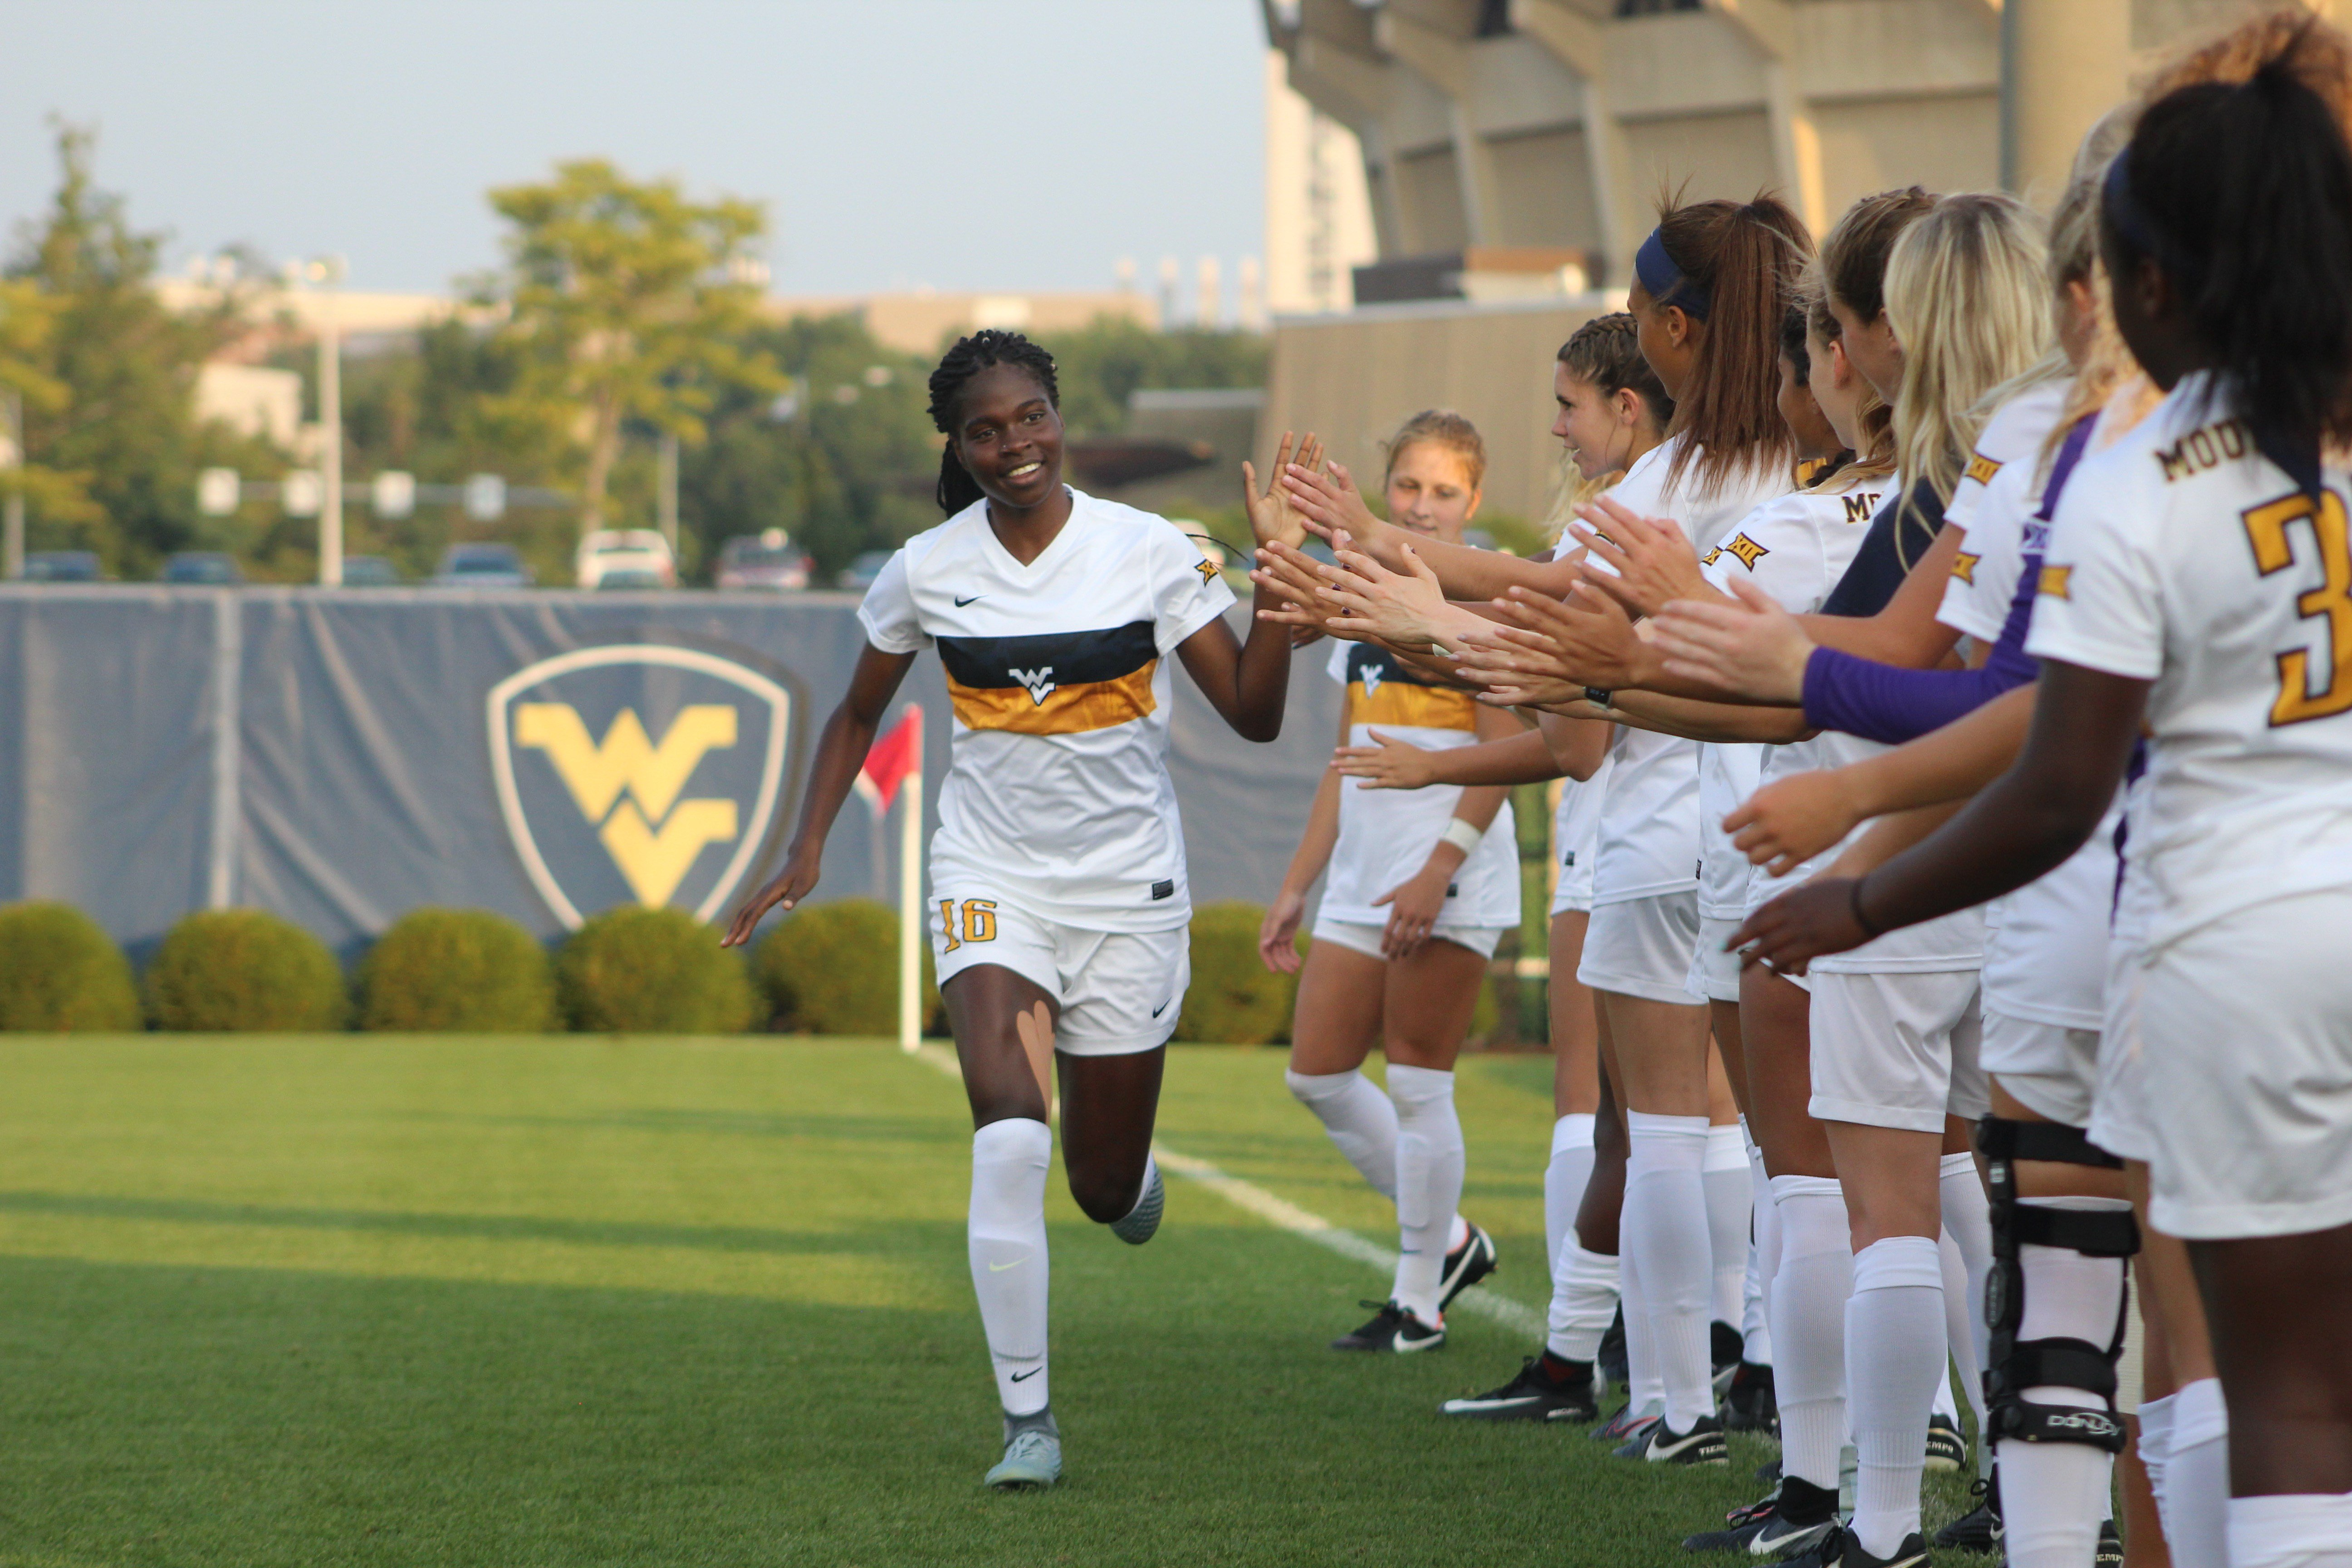 WVU junior Easther Mayi Kith during Monday's introductions. (PHOTO: Anjelica Trinone)